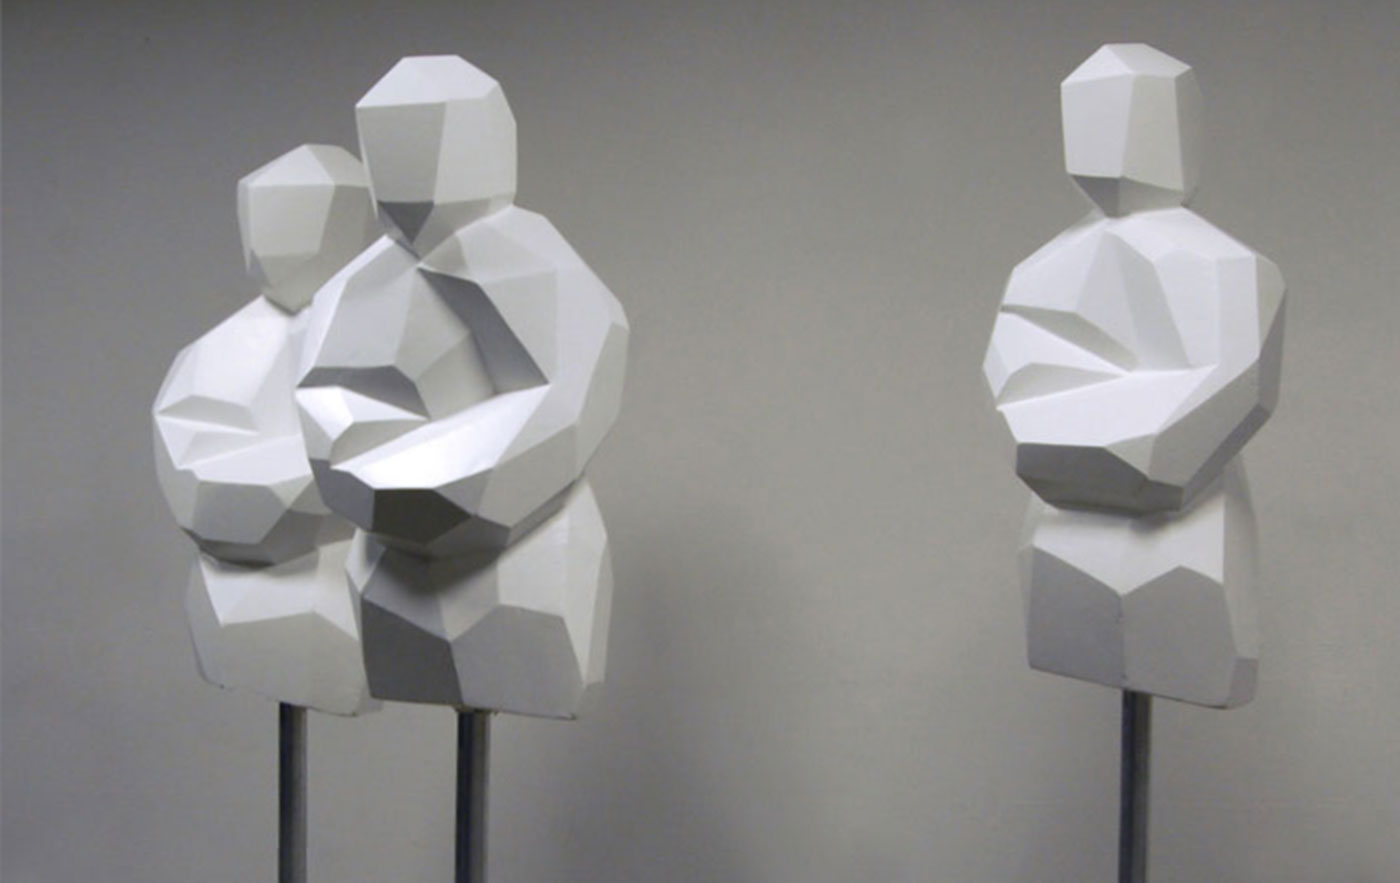 3 TORSI, © 2009, styrofoam, dispersion surface, paint, steel, each 100 x 50 x 50 cm